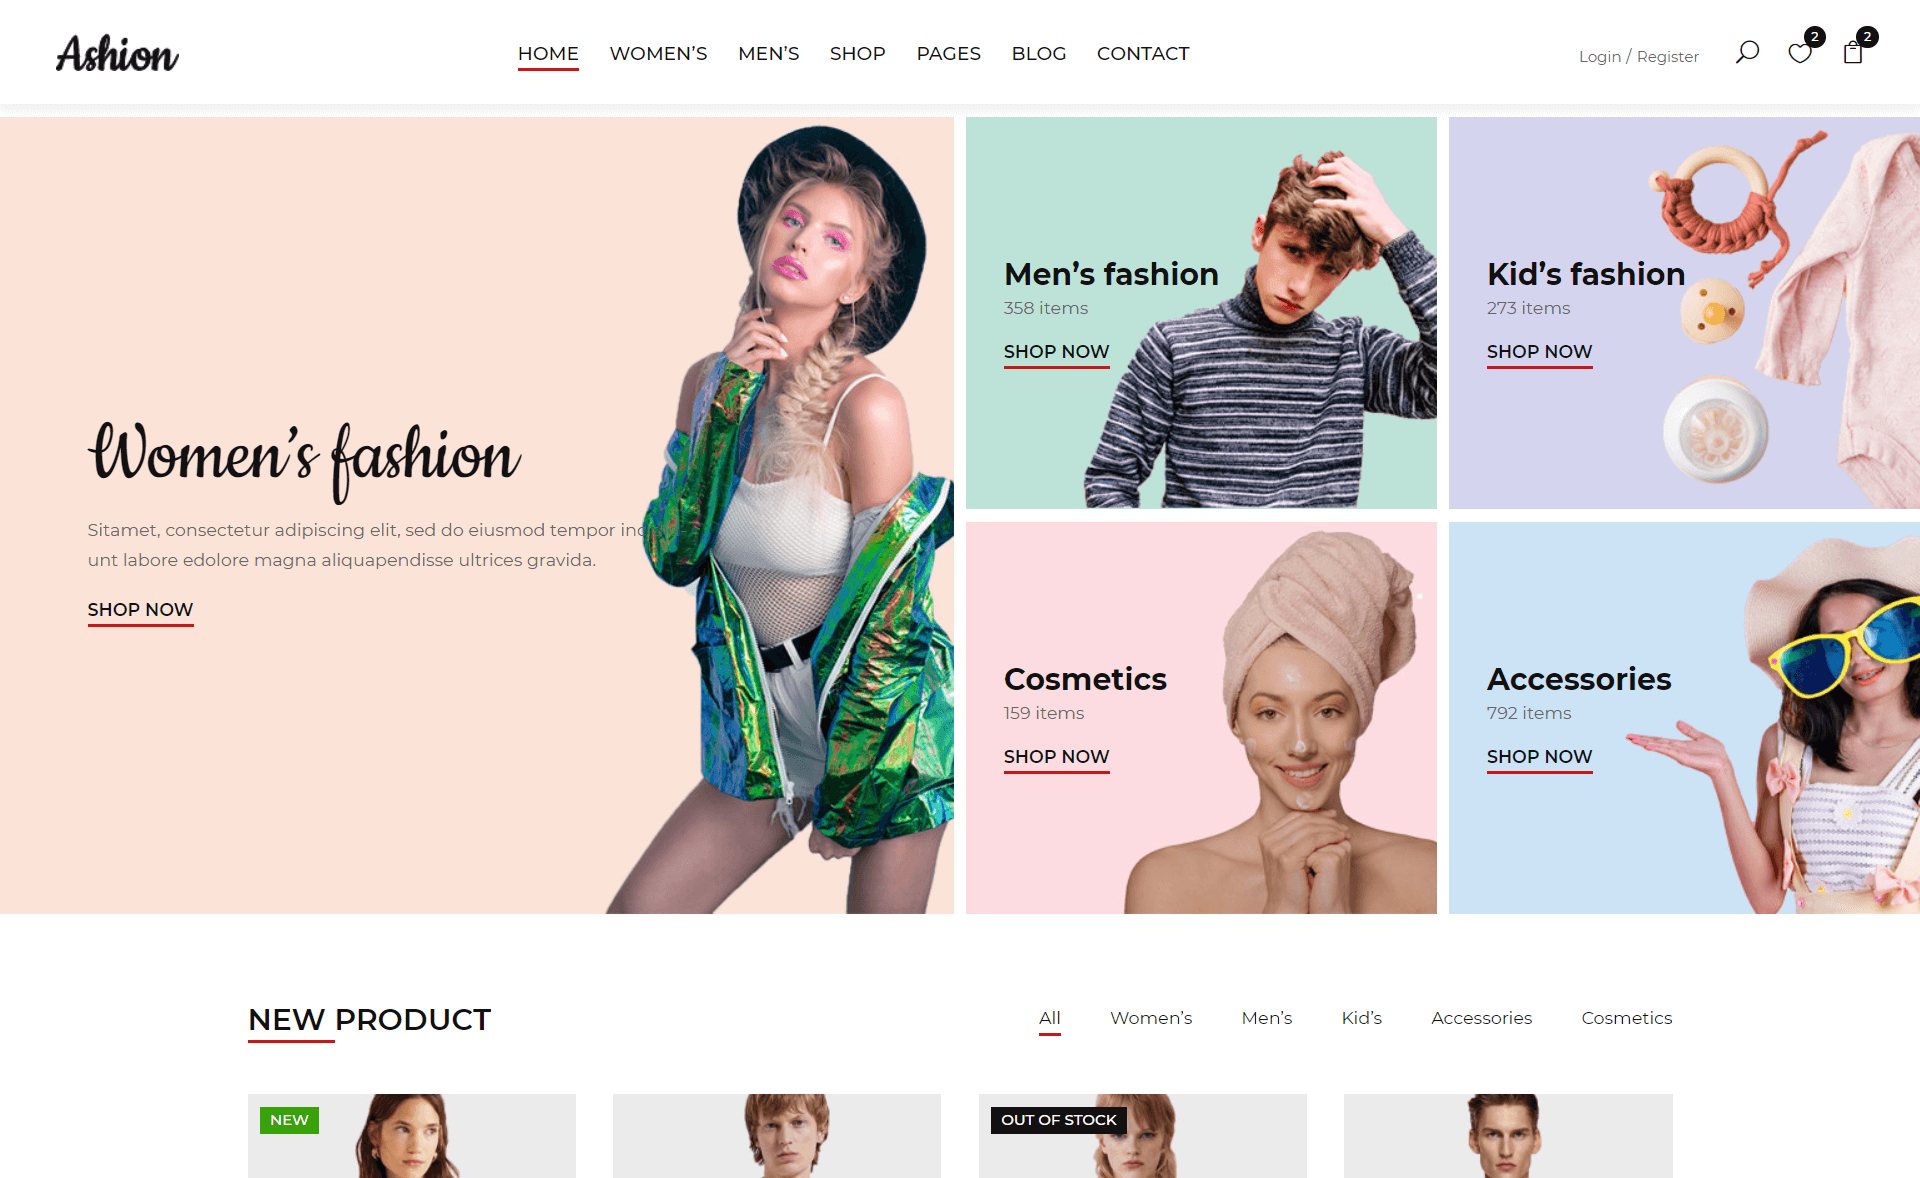 Free Responsive Bootstrap 4 HTML5 eCommerce Website Template